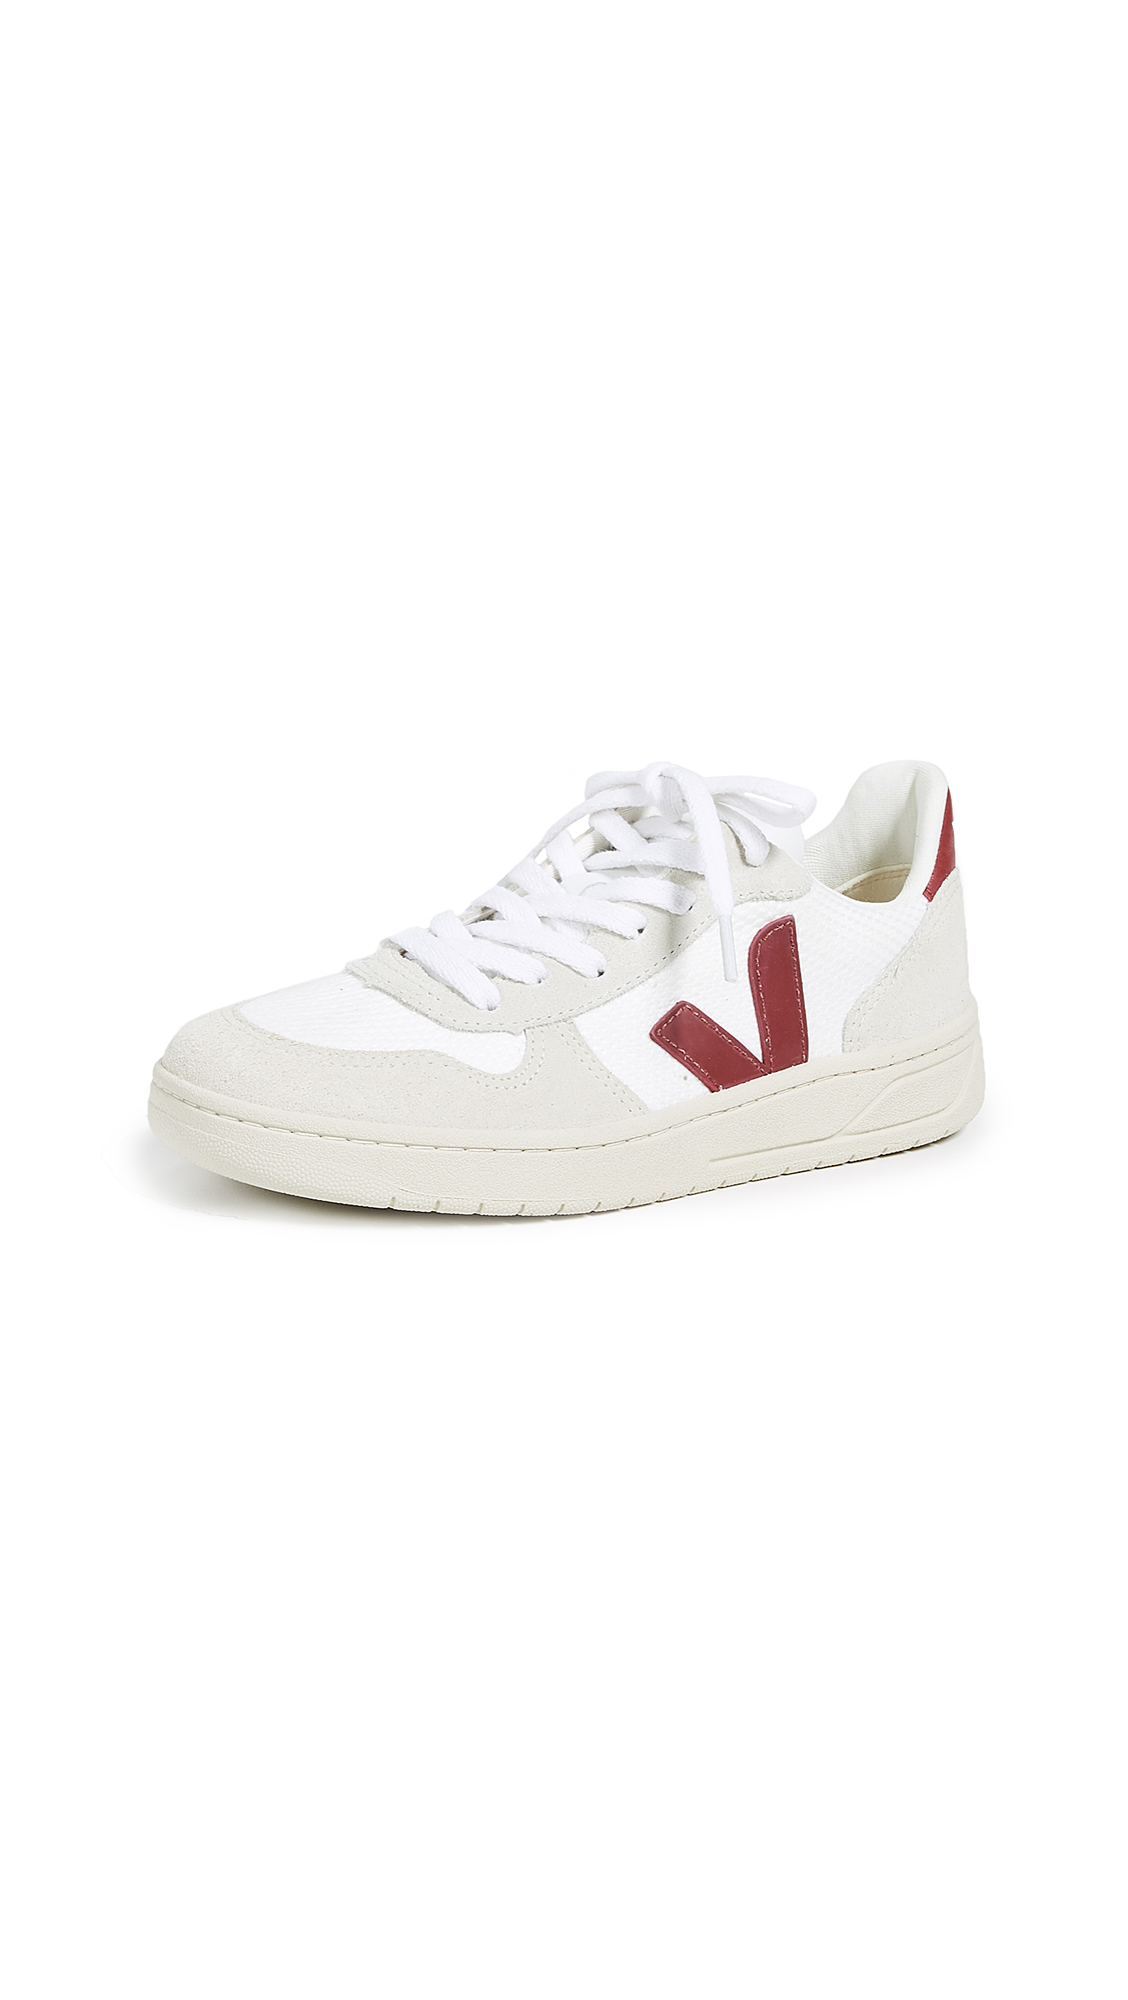 Veja V-10 Lace Up Sneakers - White/Marsala